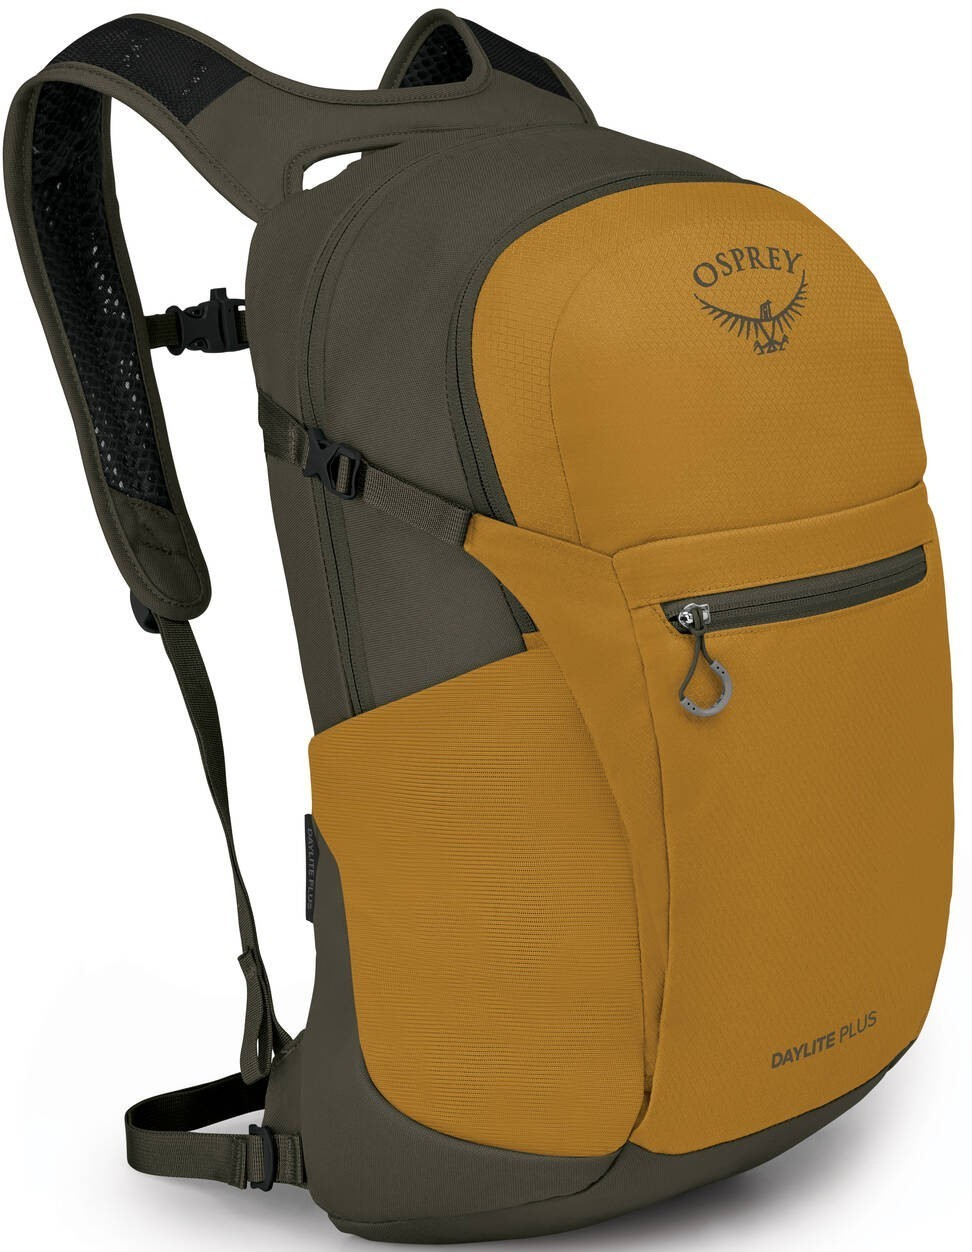 Городские рюкзаки Рюкзак городской Osprey Daylite Plus Teakwood yellow Daylite_Plus_S21_Side_Teakwood_Yellow_web.jpg